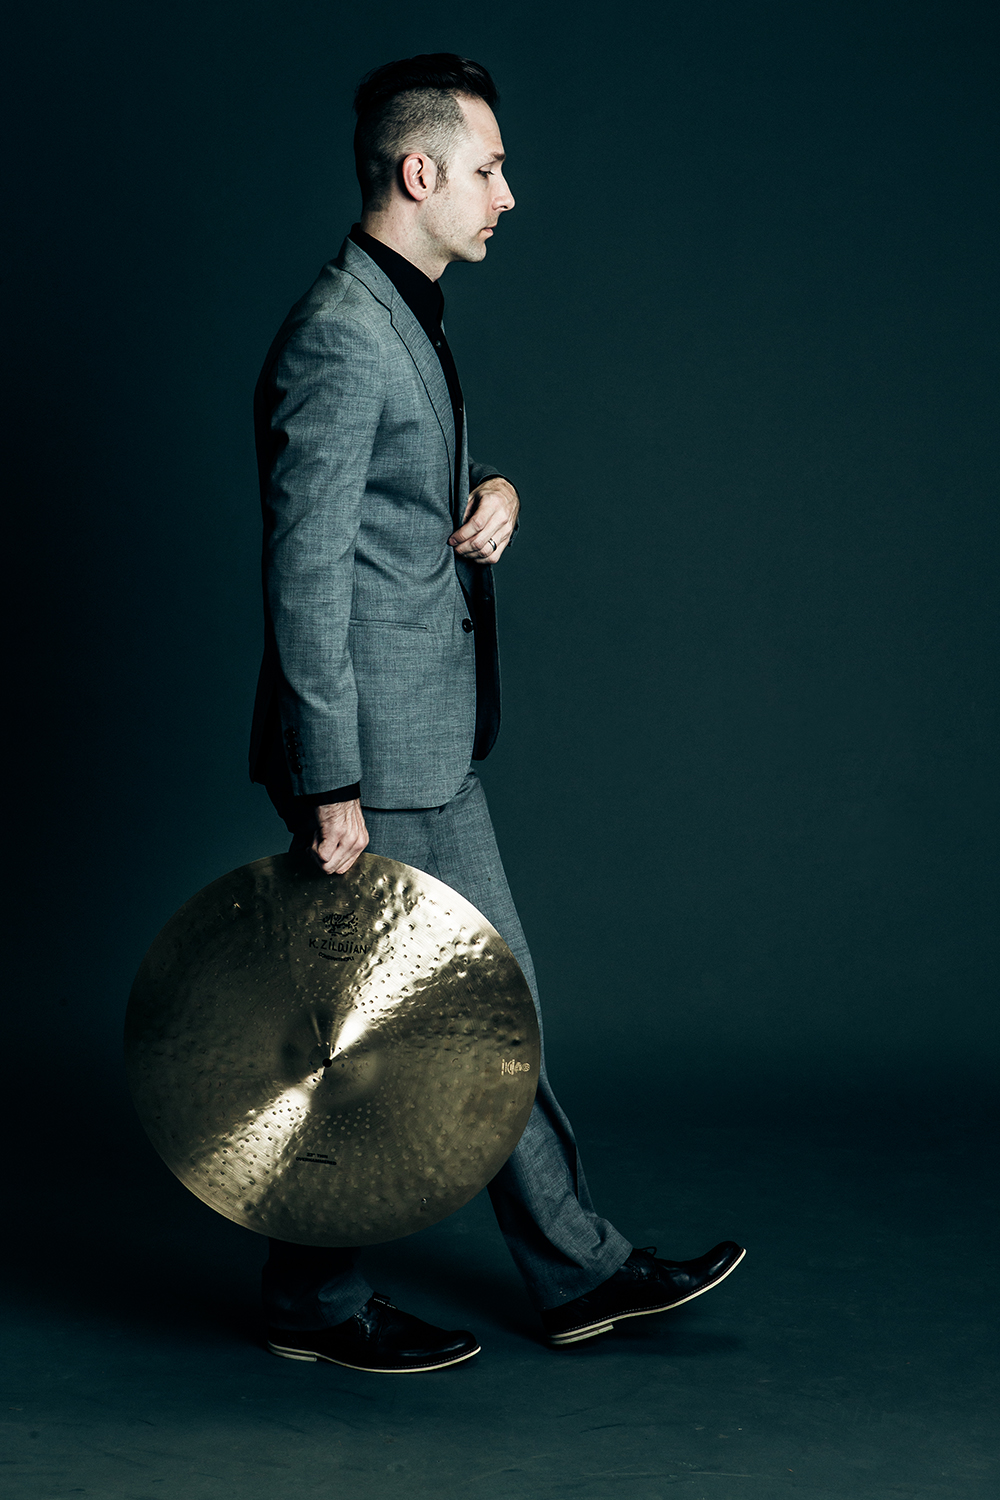 Anthony Matula Gray Suit Zildjian Walk.jpg